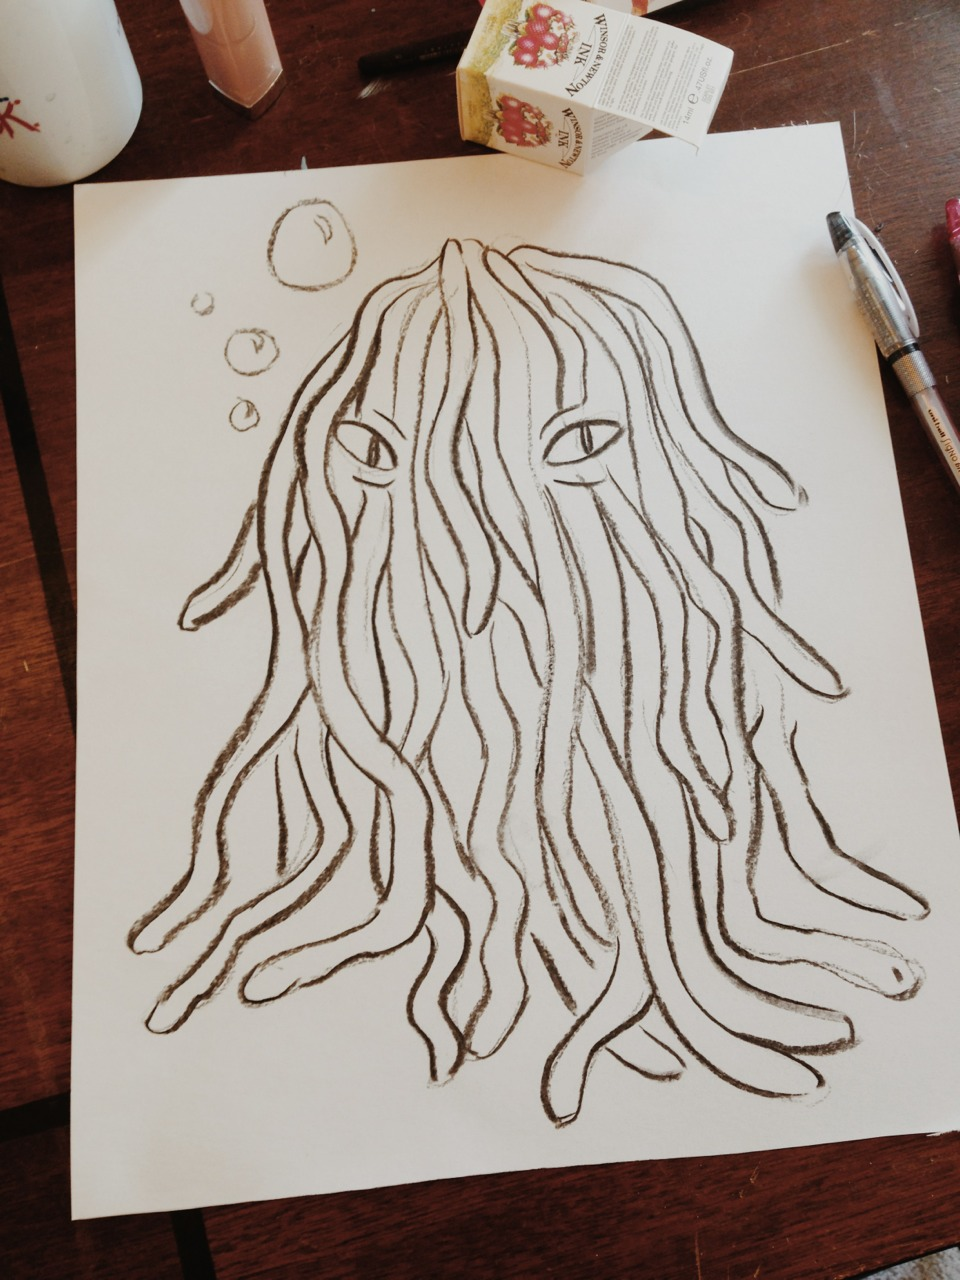 Broke out the vine charcoal… Doodled a spaghetti sea monster thing